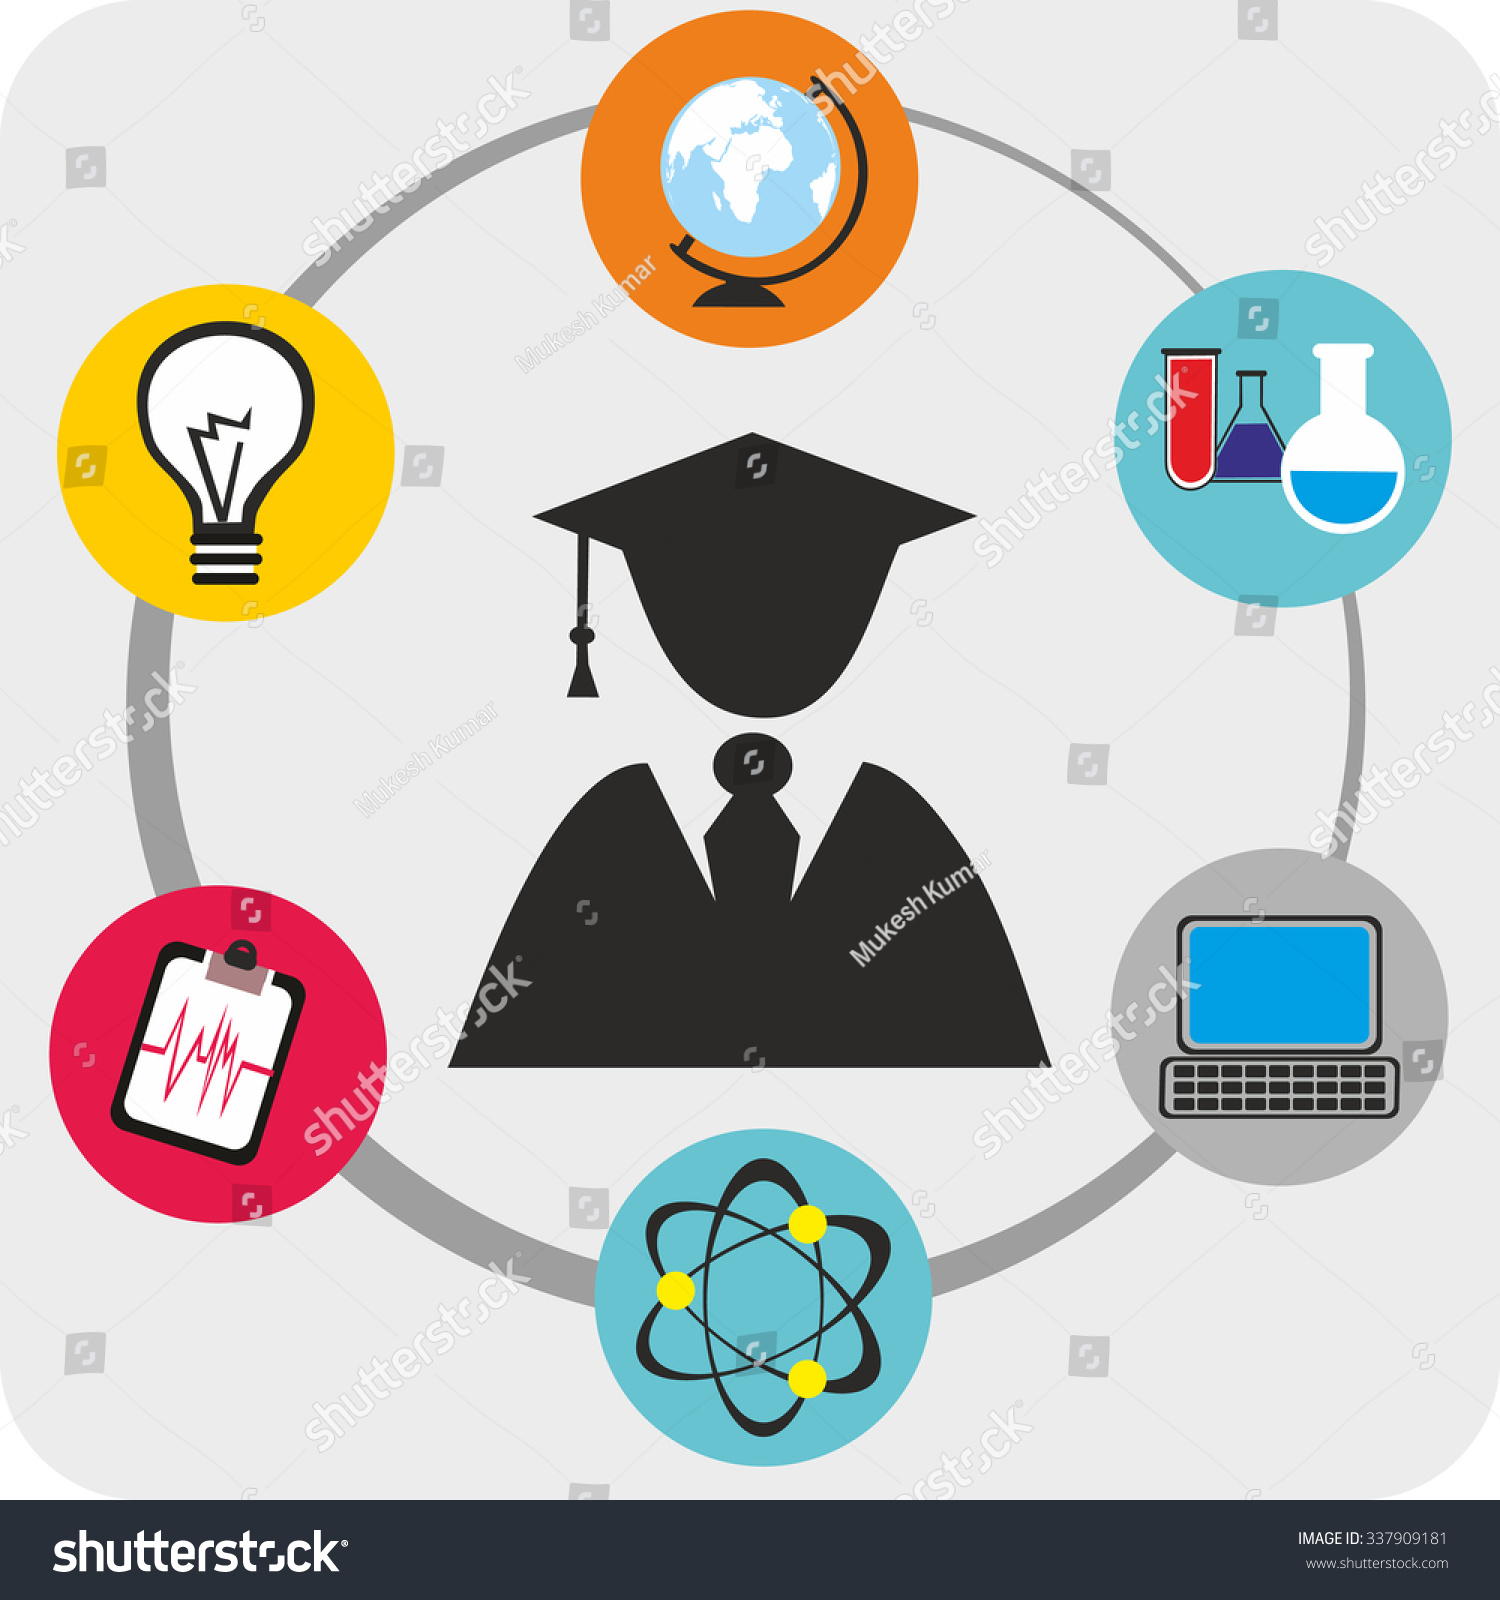 Deciding stock illustrations royalty free gograph - Graduate Student By Education Icons And Career Decision Sign Concept Of Choice Of Future Profession